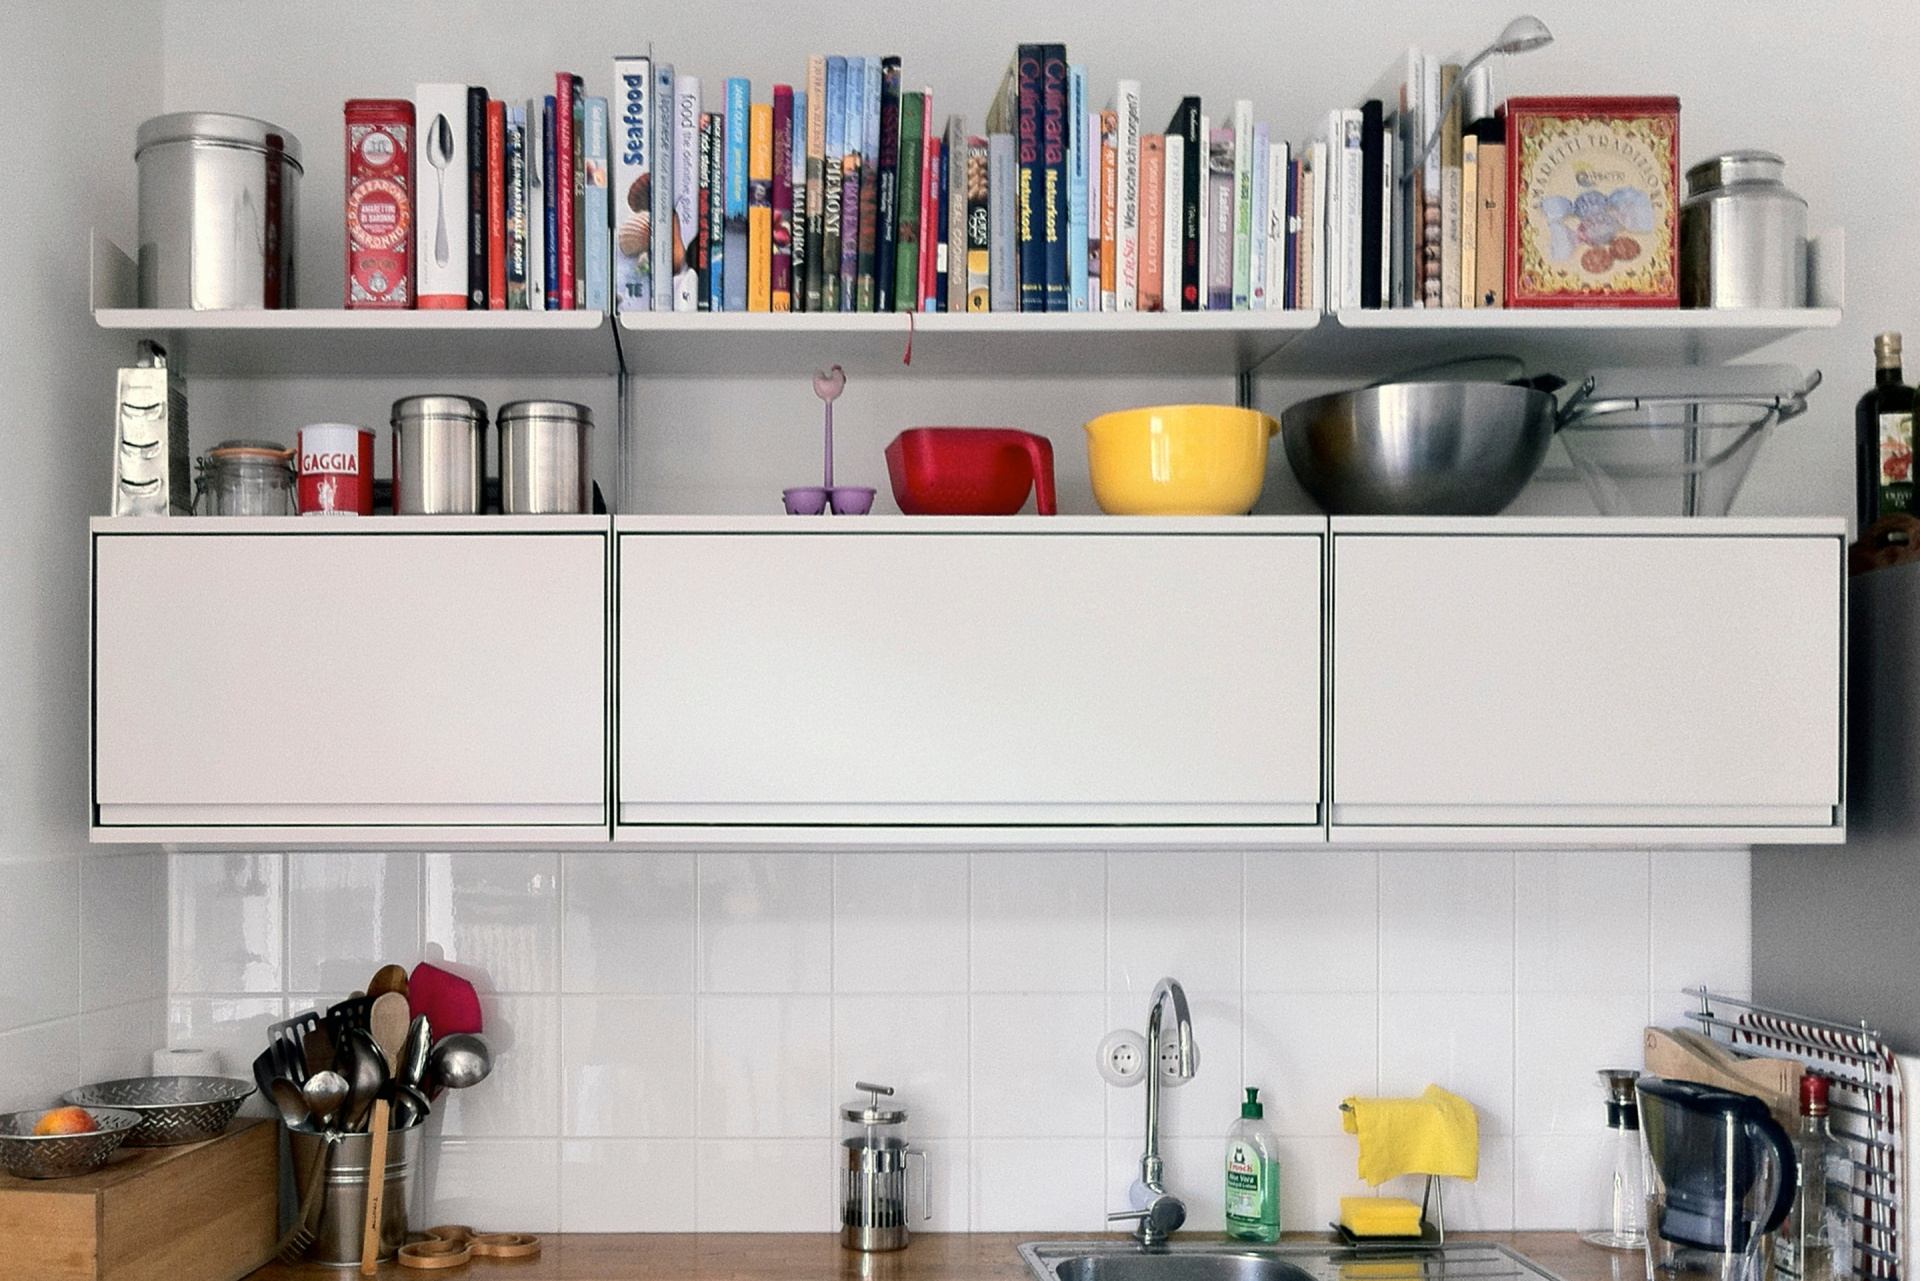 Three cabinets and three shelves. What more does your kitchen need?